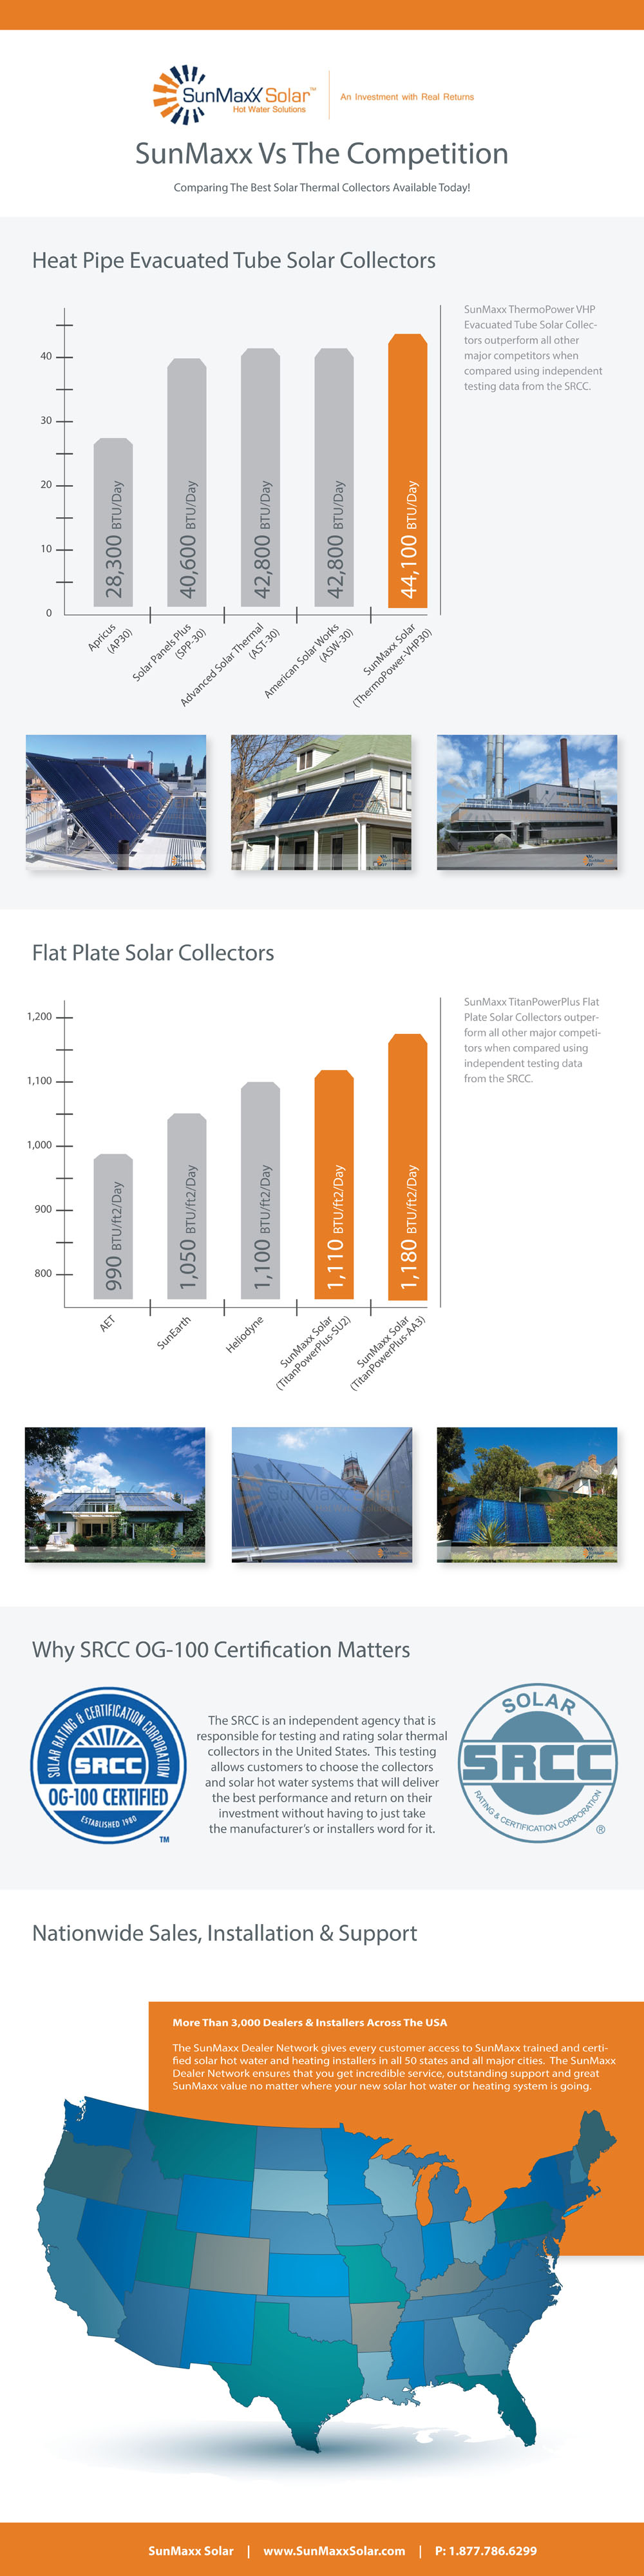 Best Solar Collectors: SunMaxx Vs Competition [INFOGRAPHIC]